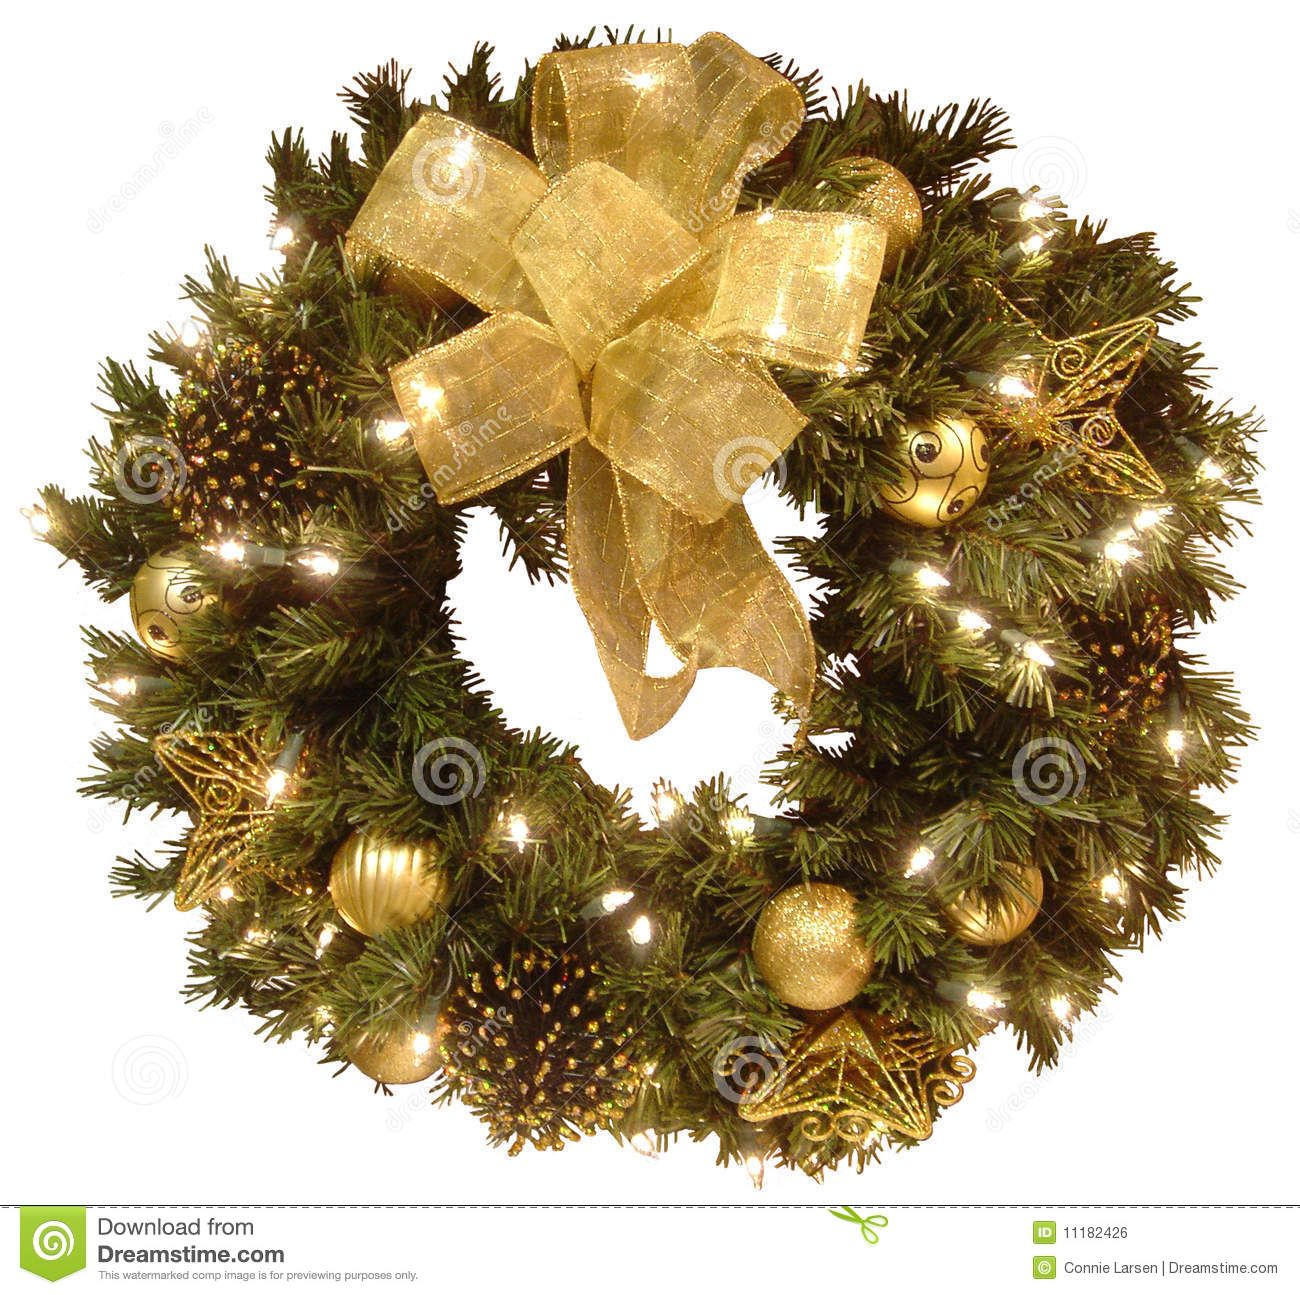 Great wreath christmas pinterest for How to decorate a christmas wreath